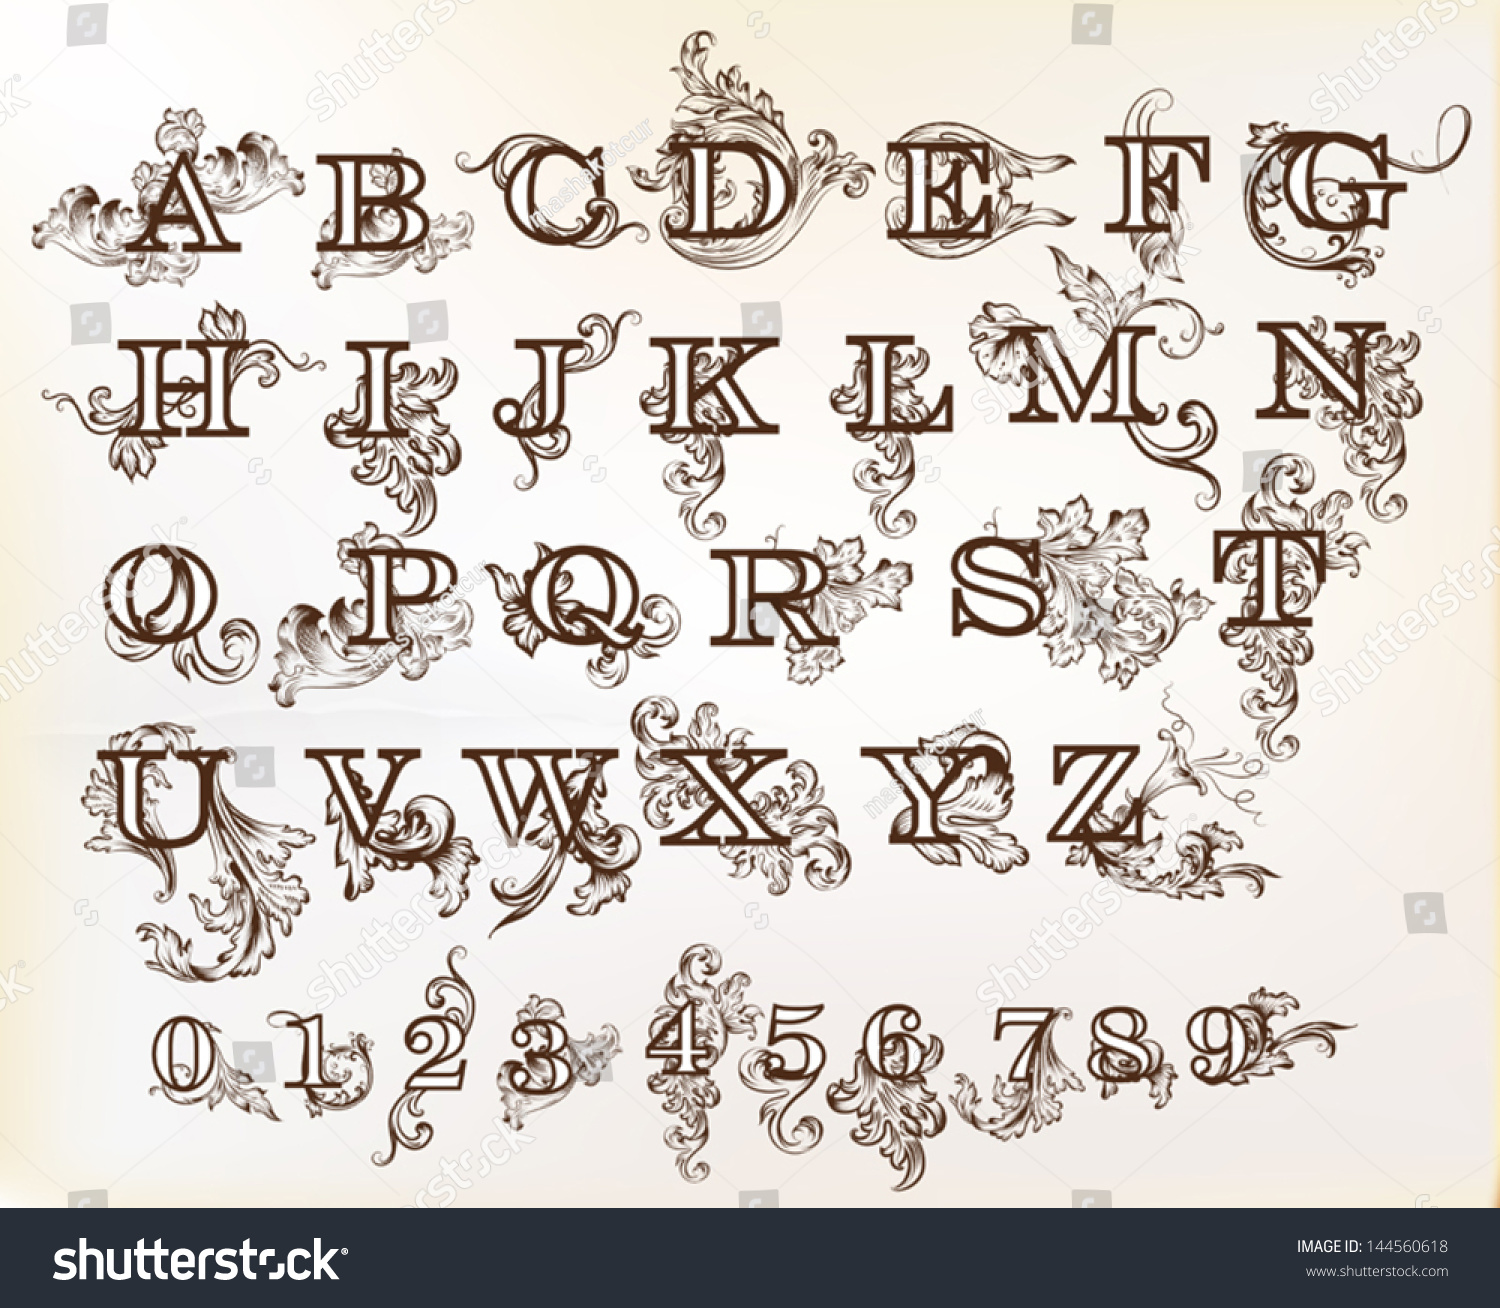 Decorative English Letters For Design. Calligraphic Vector - 144560618 ...